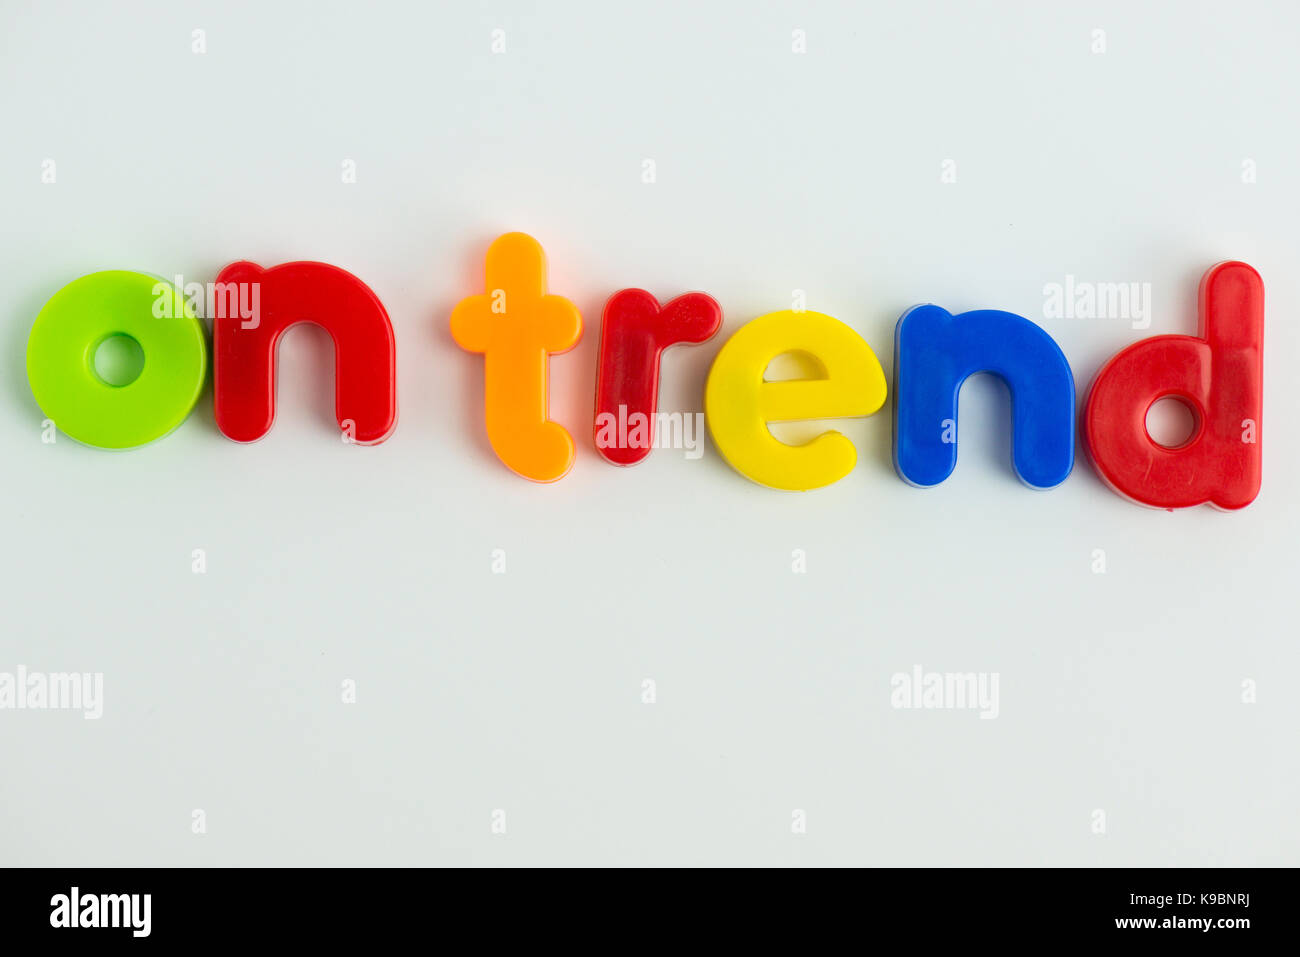 on trend word in colourful children's letters - Stock Image